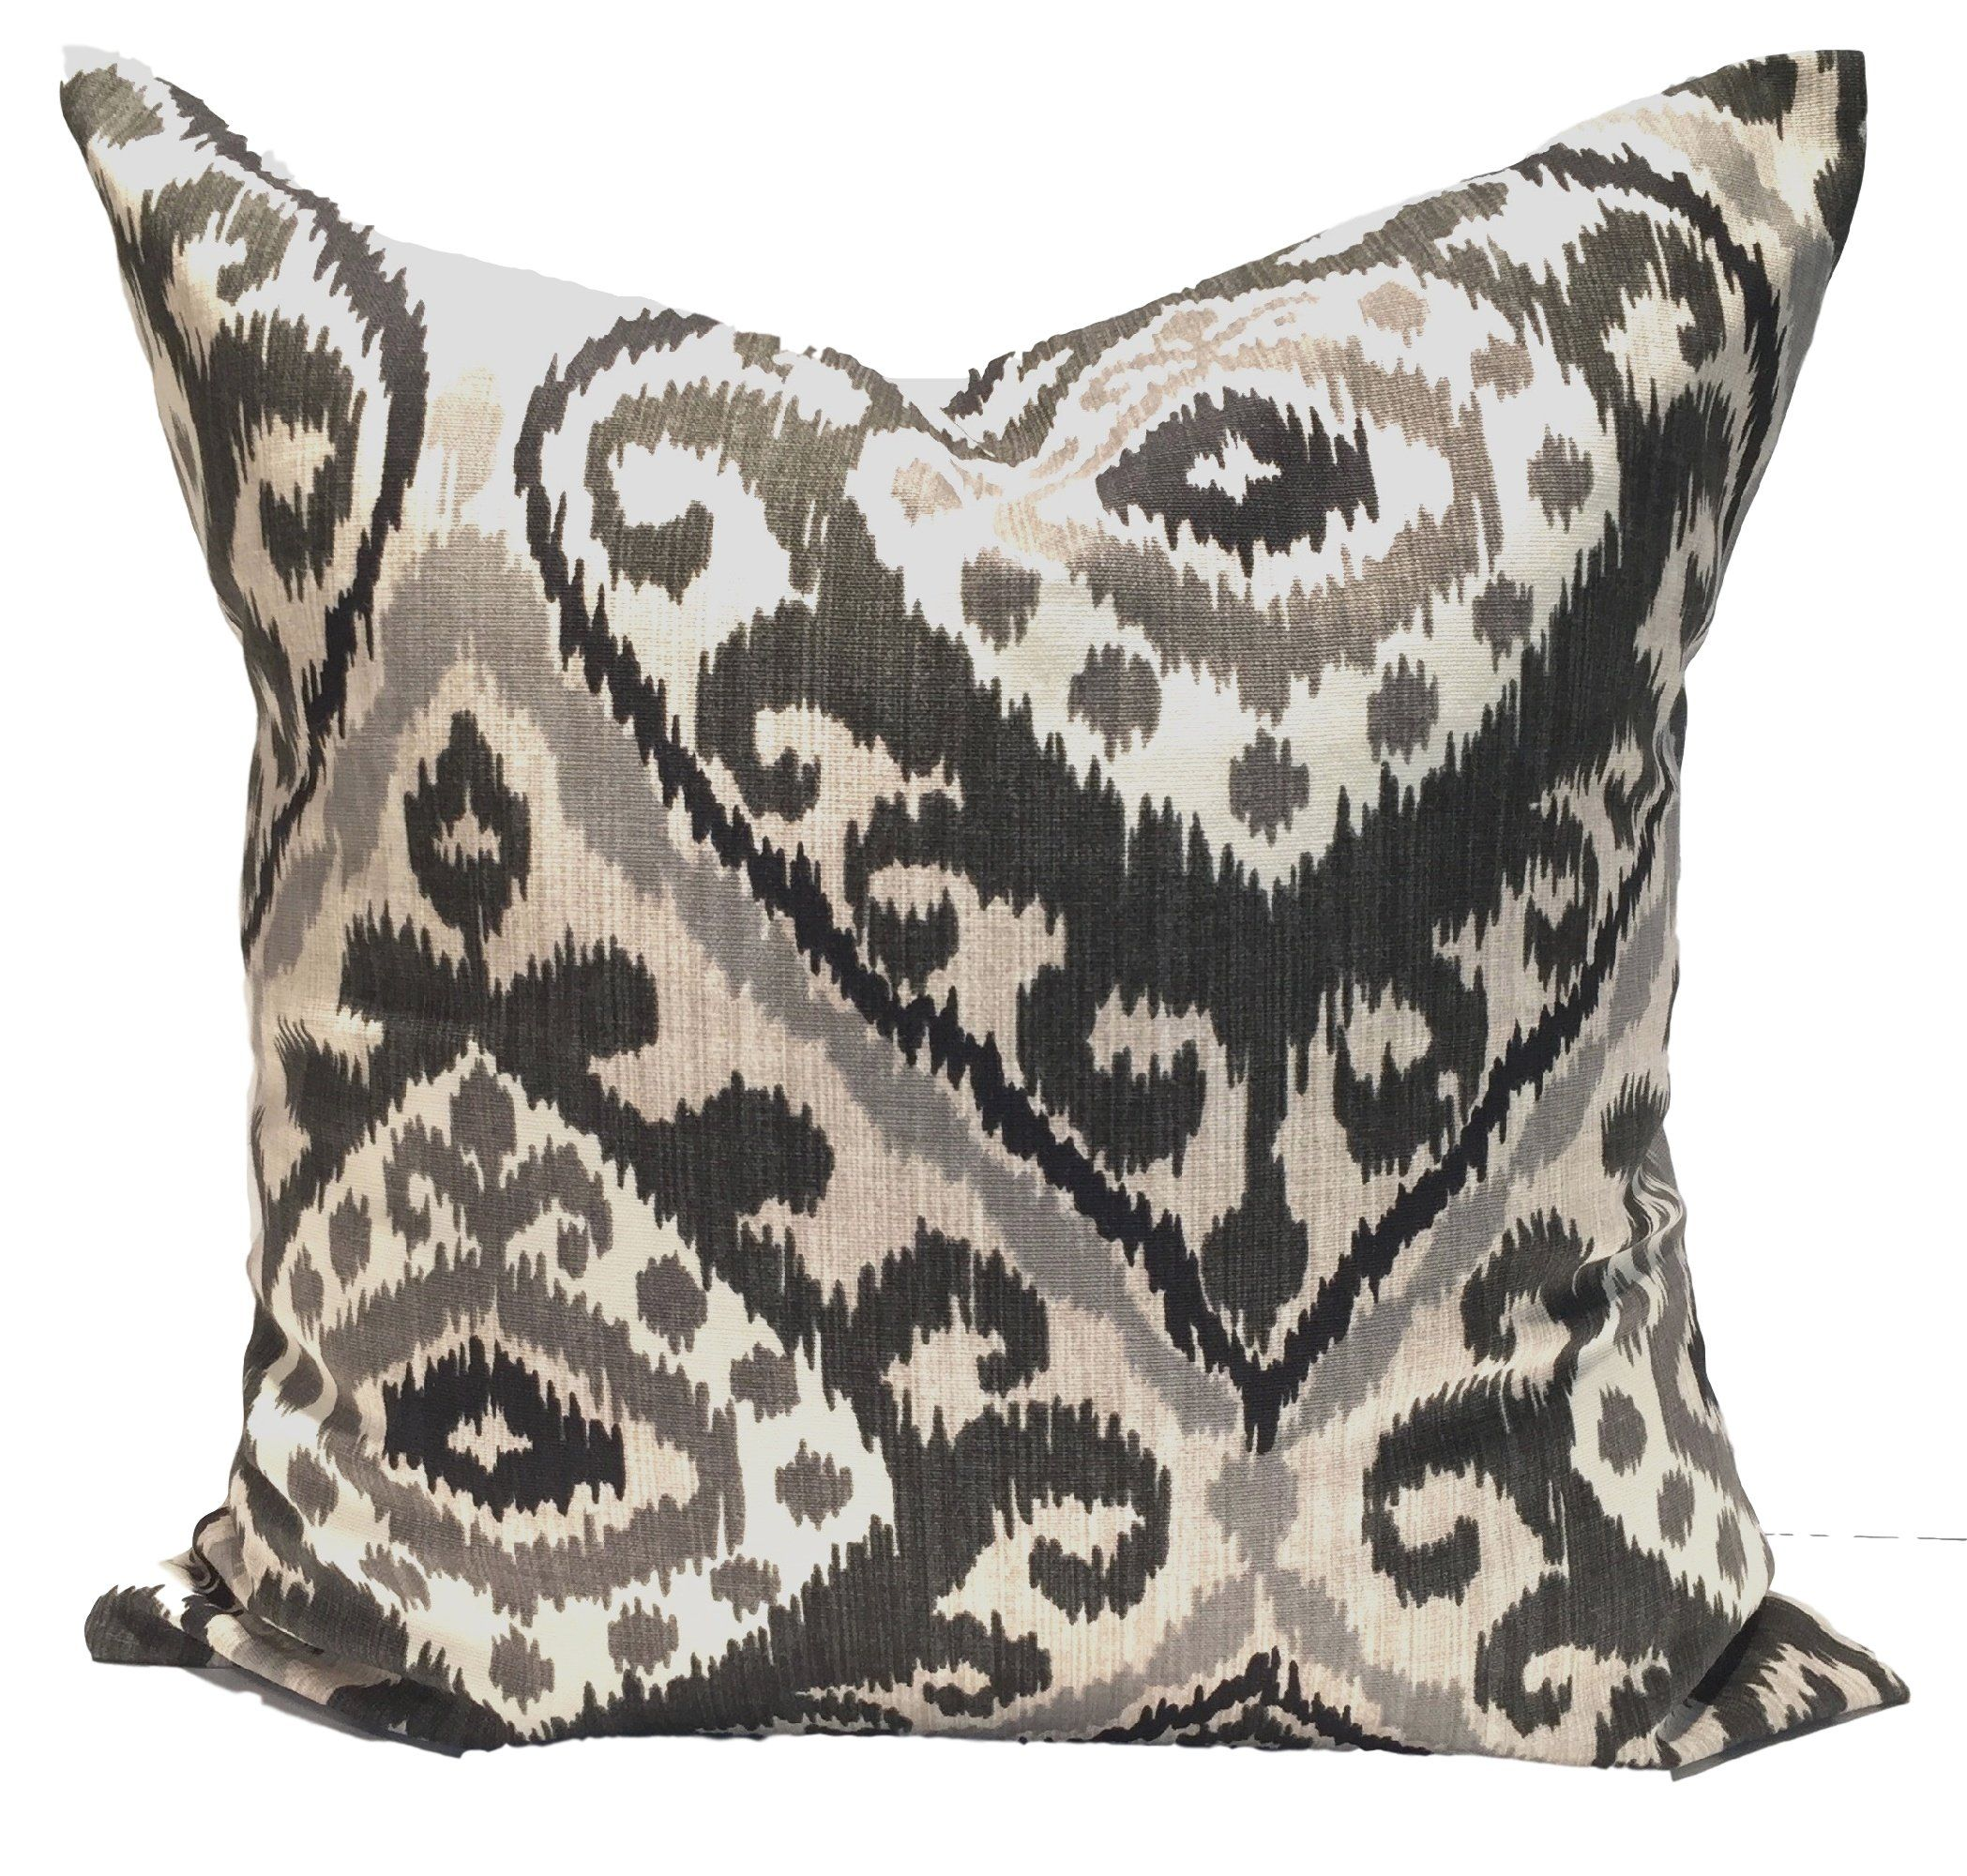 Peachy Black Tan Large Ikat In 2019 Black Pillow Covers Ikat Gmtry Best Dining Table And Chair Ideas Images Gmtryco